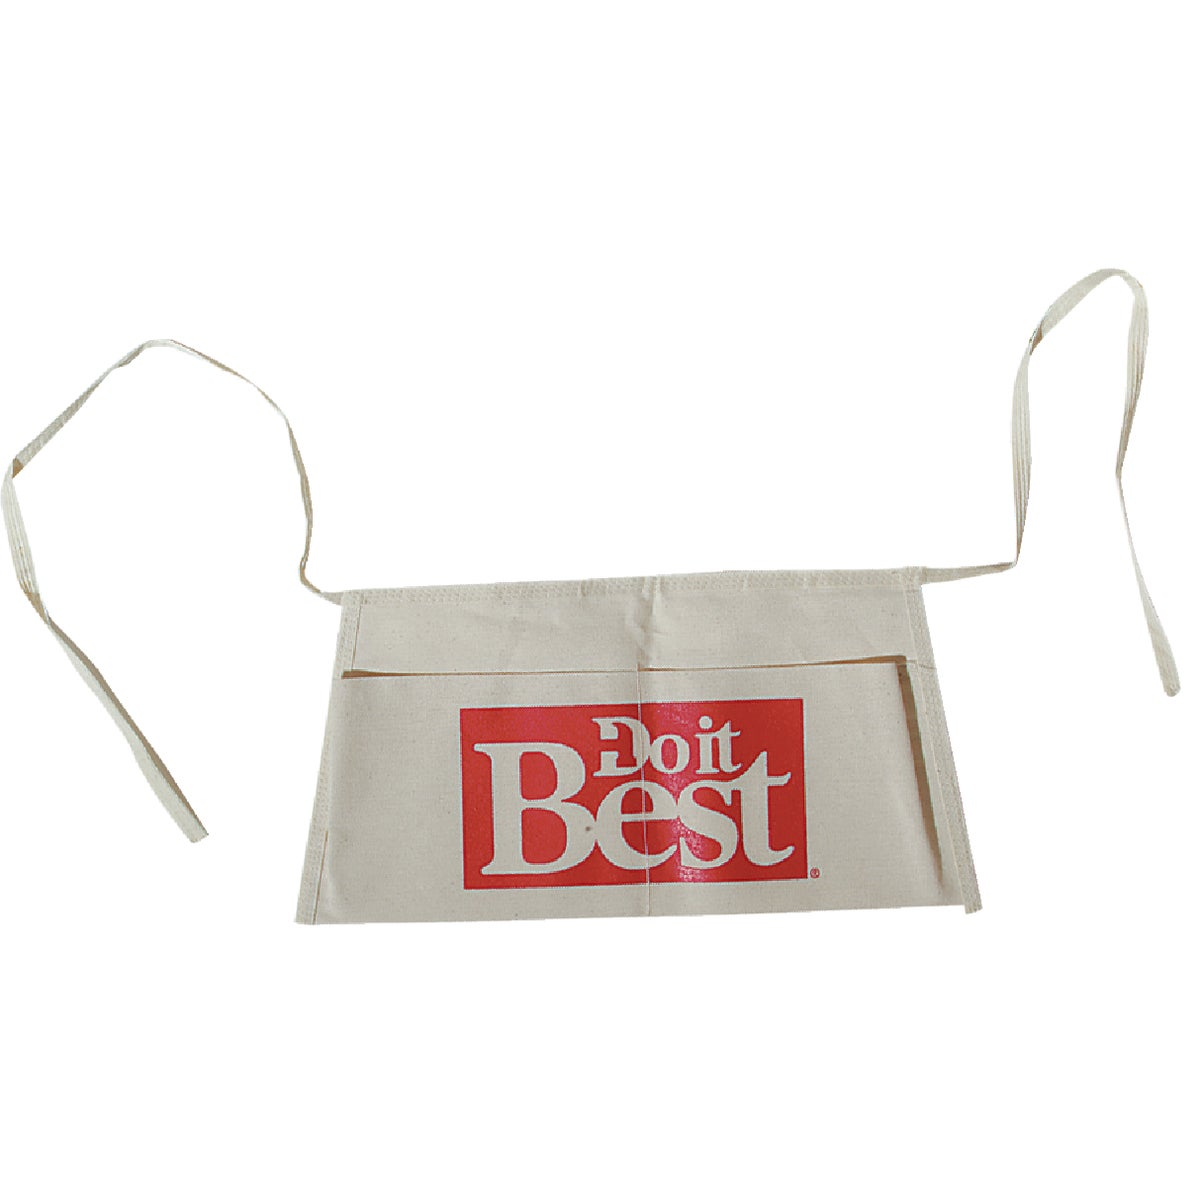 2-POCKET WAIST APRON